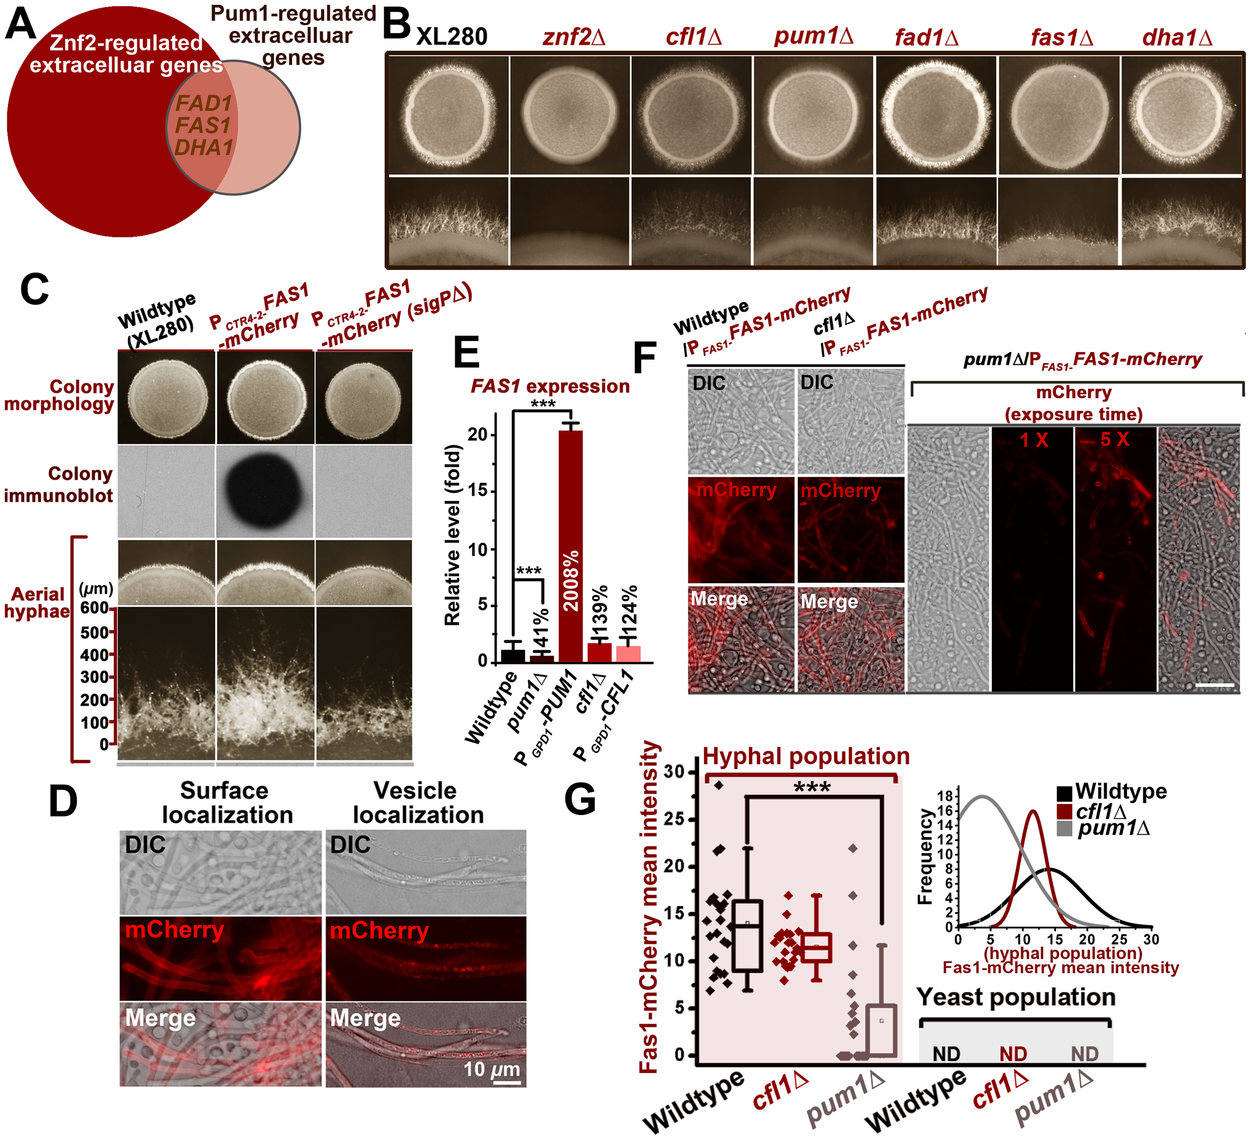 Pum1 directs hyphal initiation and extension partially through a novel hypha-specific extracellular protein Fas1.